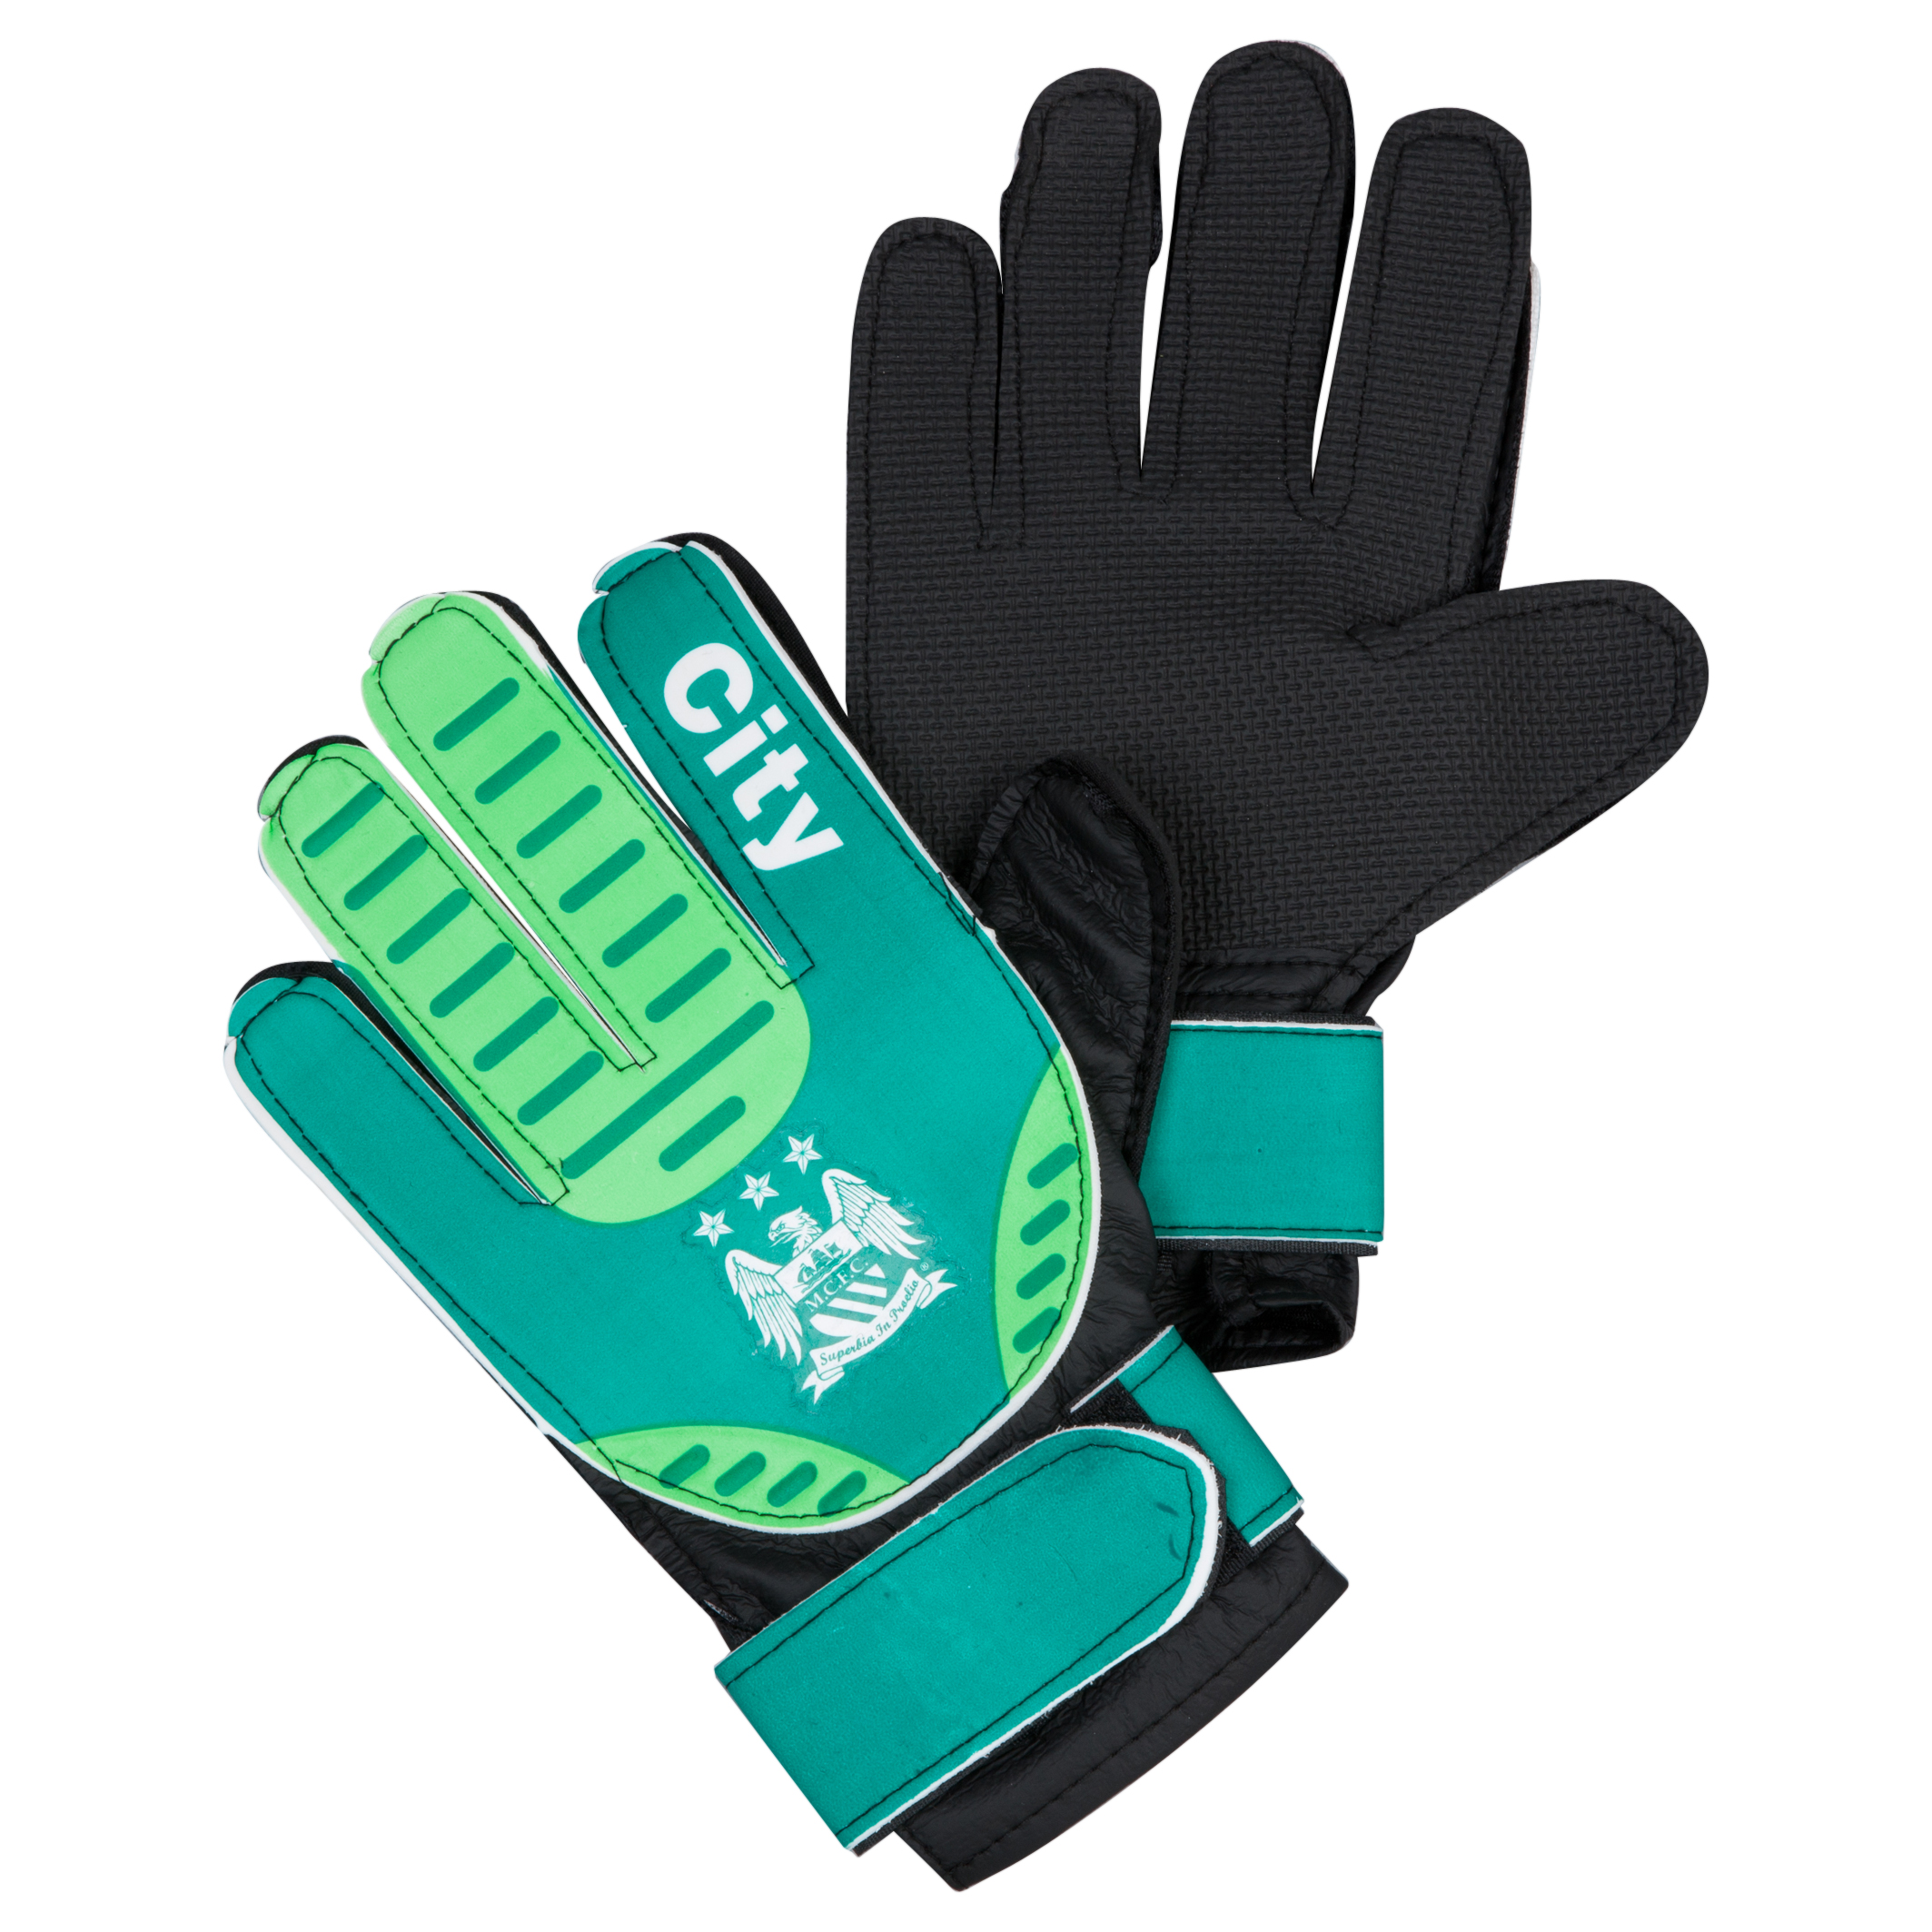 Manchester City Goalkeeper Gloves